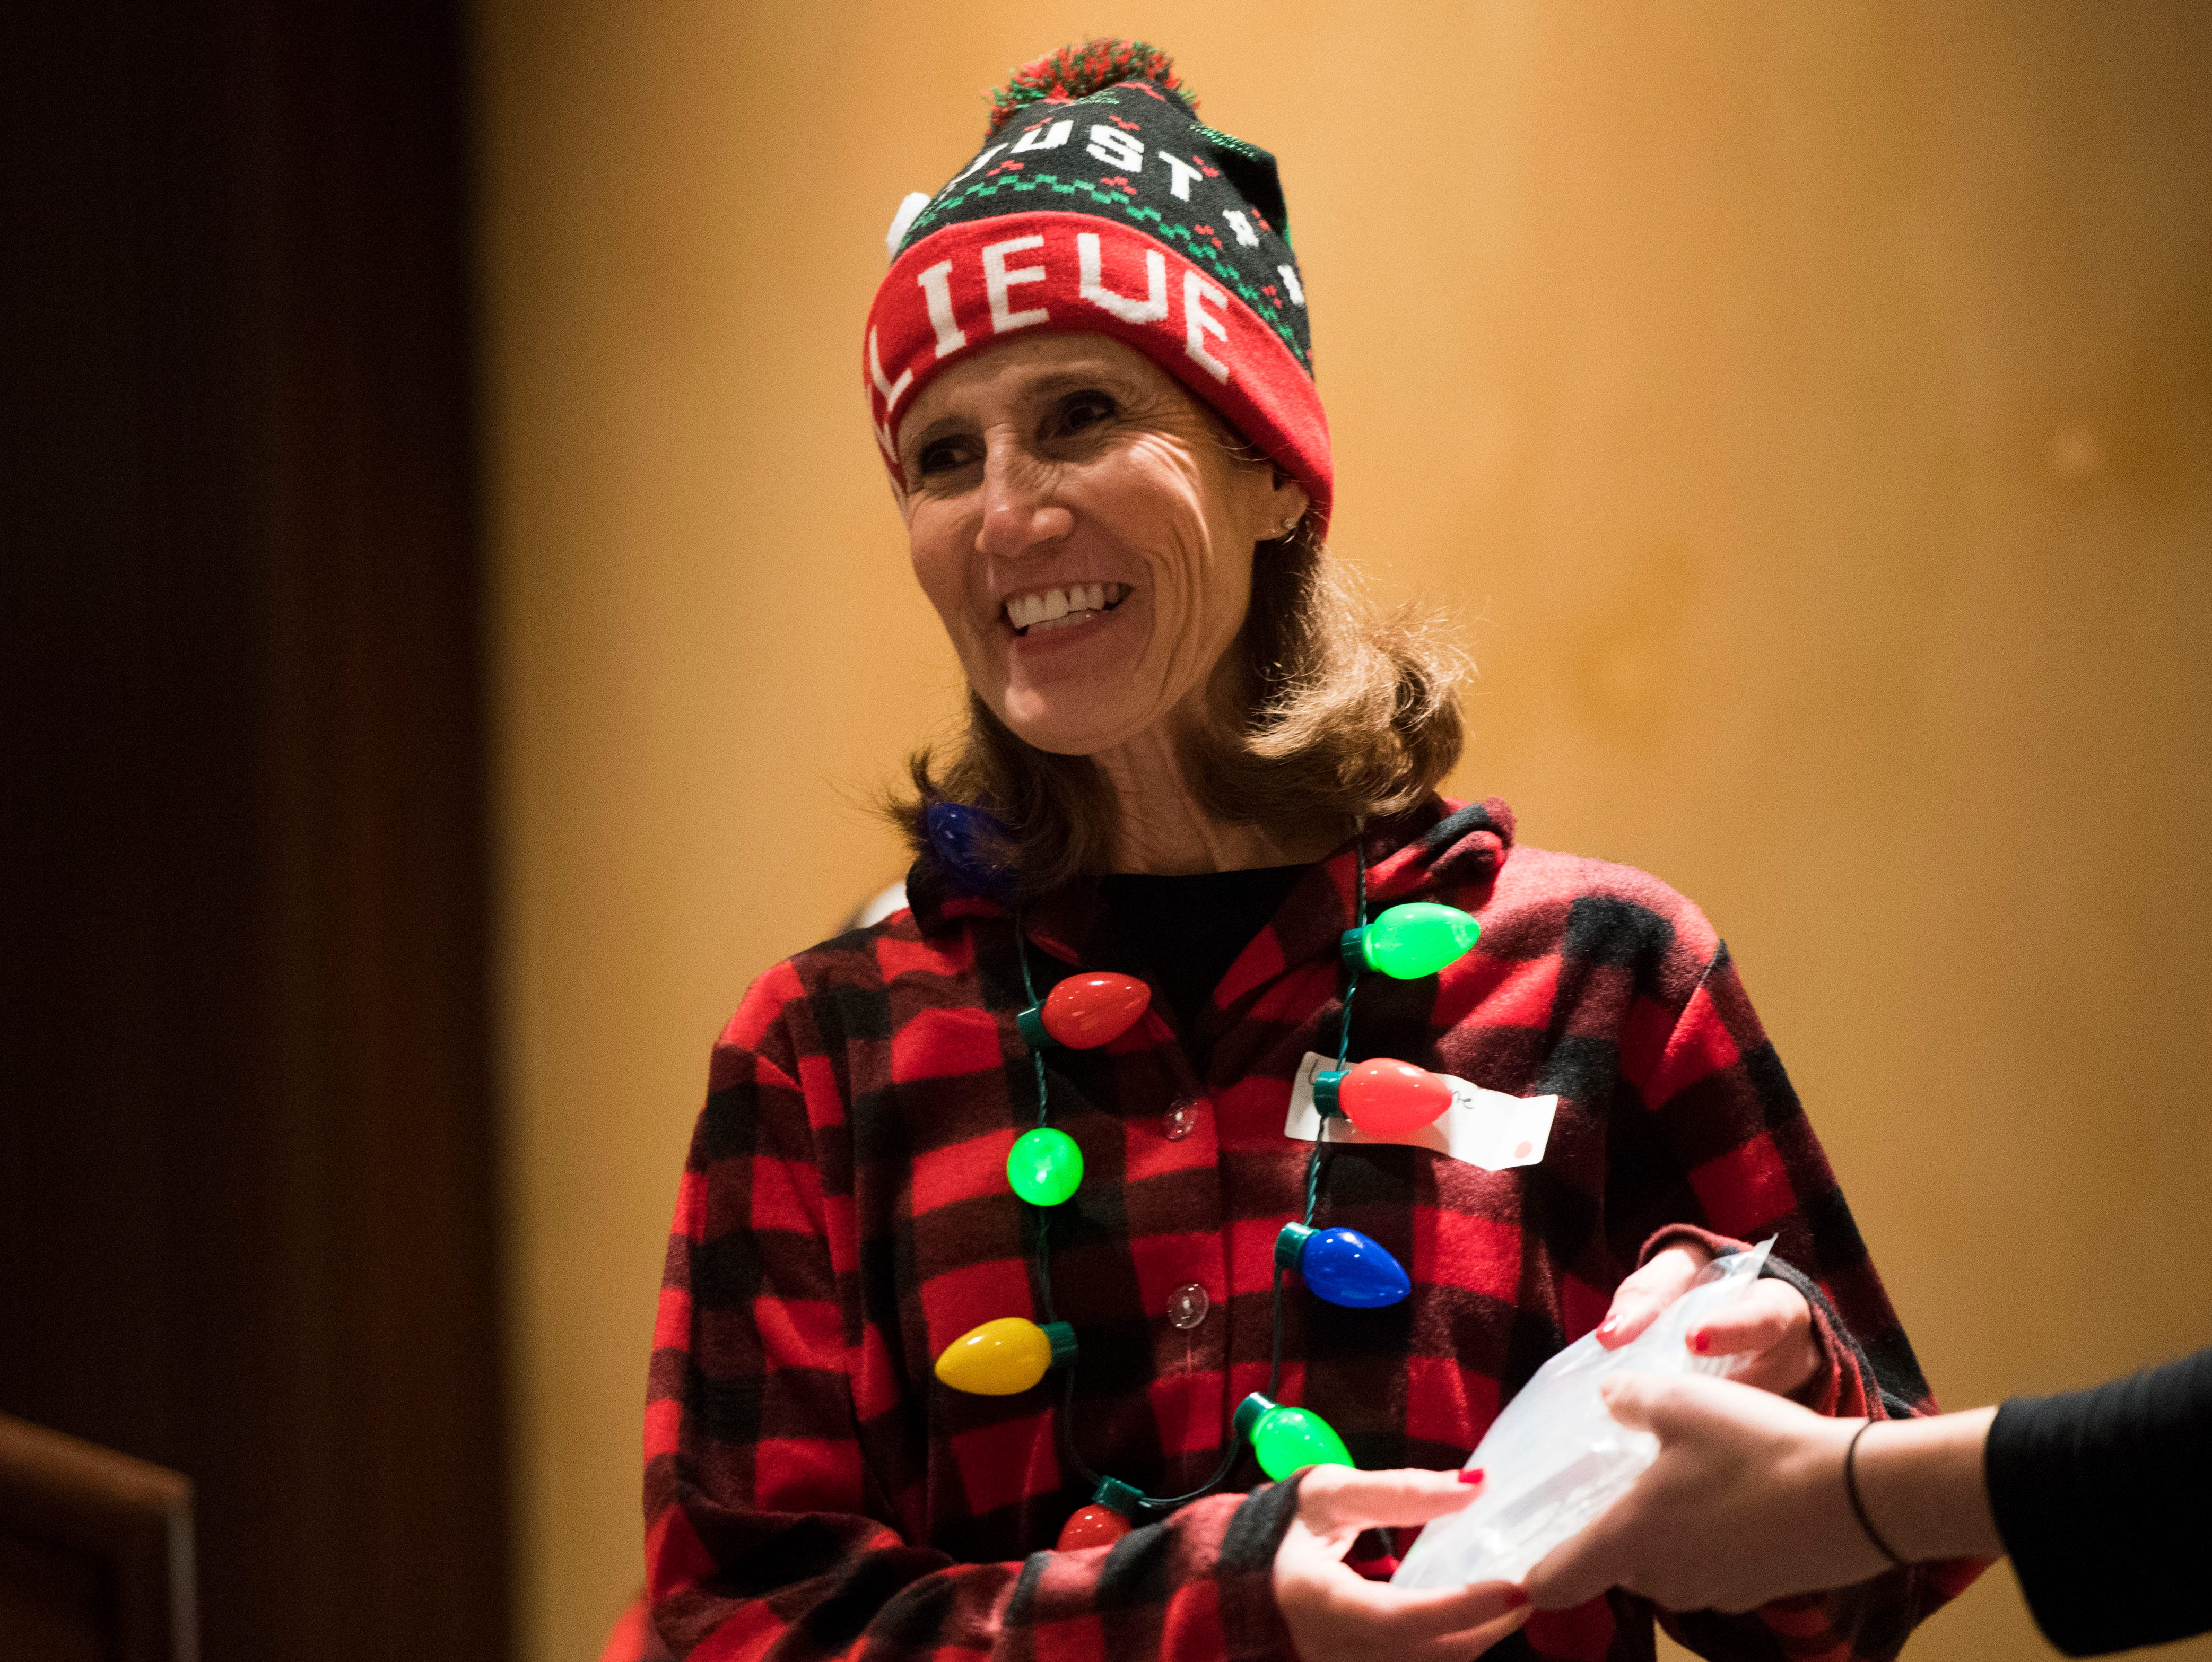 Laurie Stone, who was named Big Sister of the Year, accepts her award at the annual Big Brothers Big Sisters holiday party at the Crowne Plaza Saturday, Dec. 1, 2018. Nearly 300 mentors, mentees and family members were in attendance.